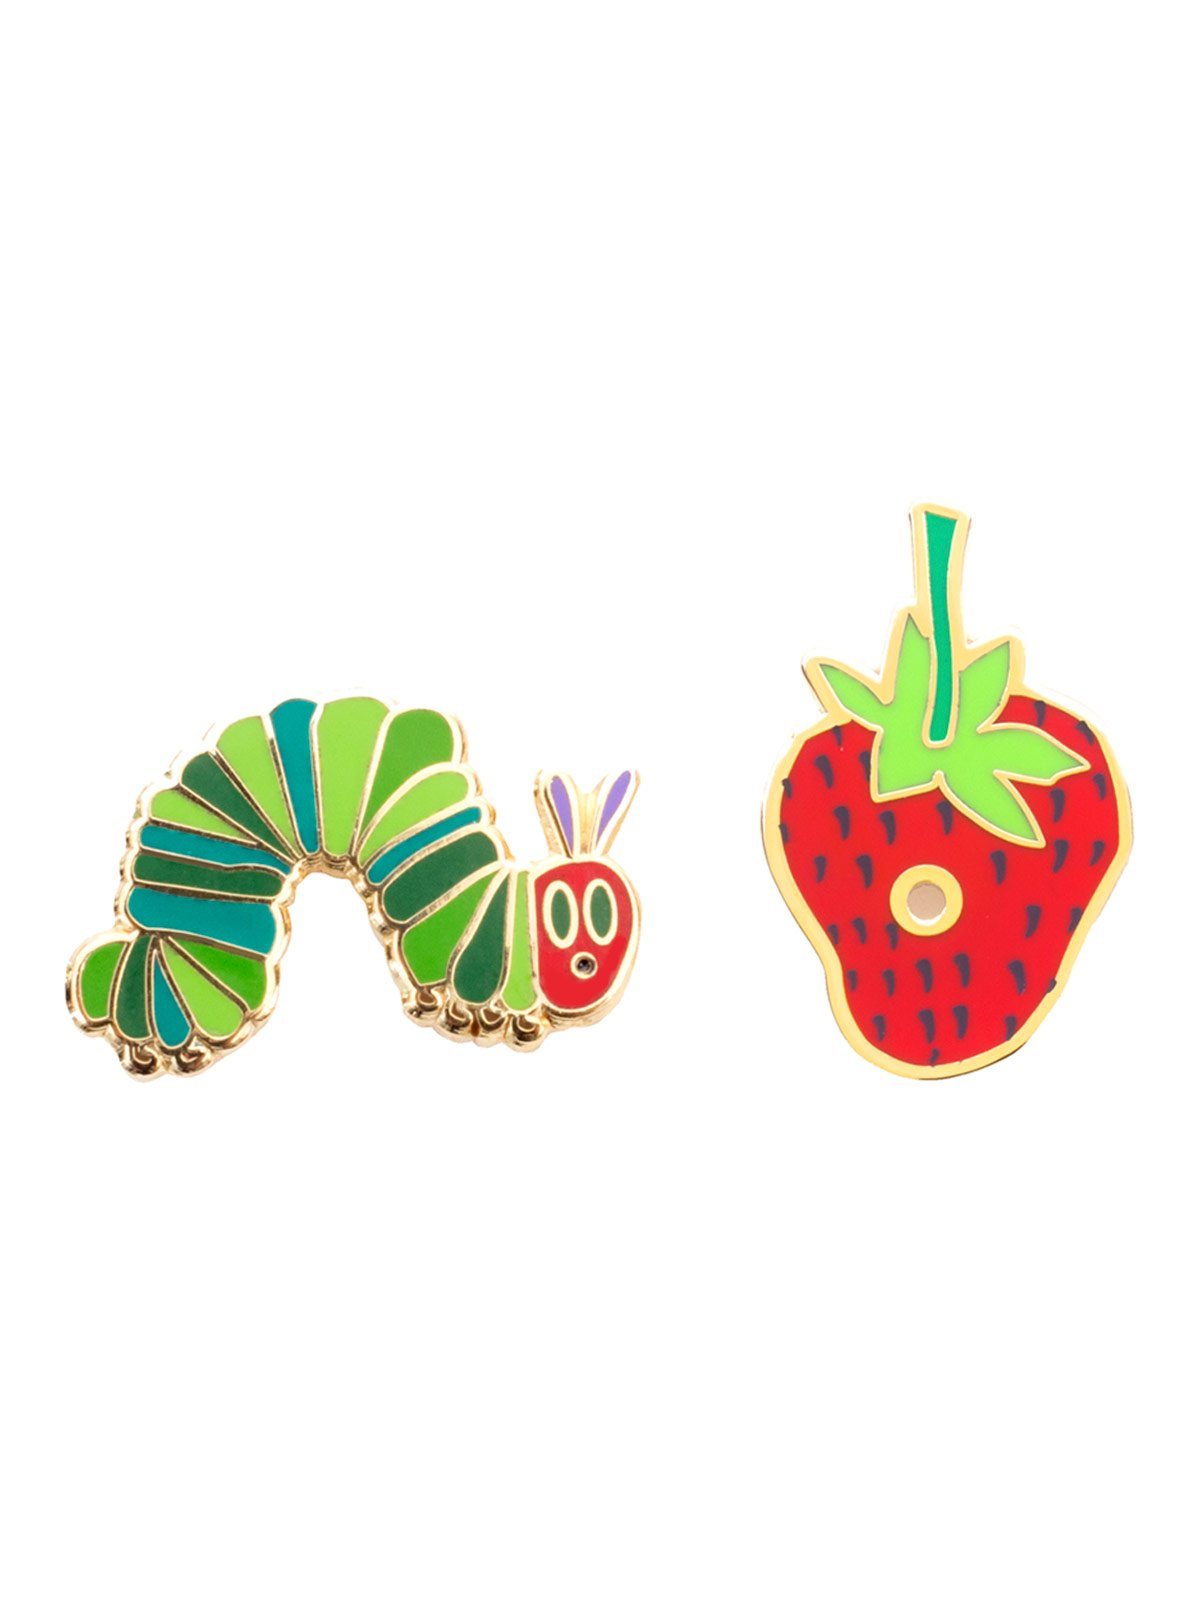 The Very Hungry Caterpillar Out Of Print Enamel Lapel Pin Set